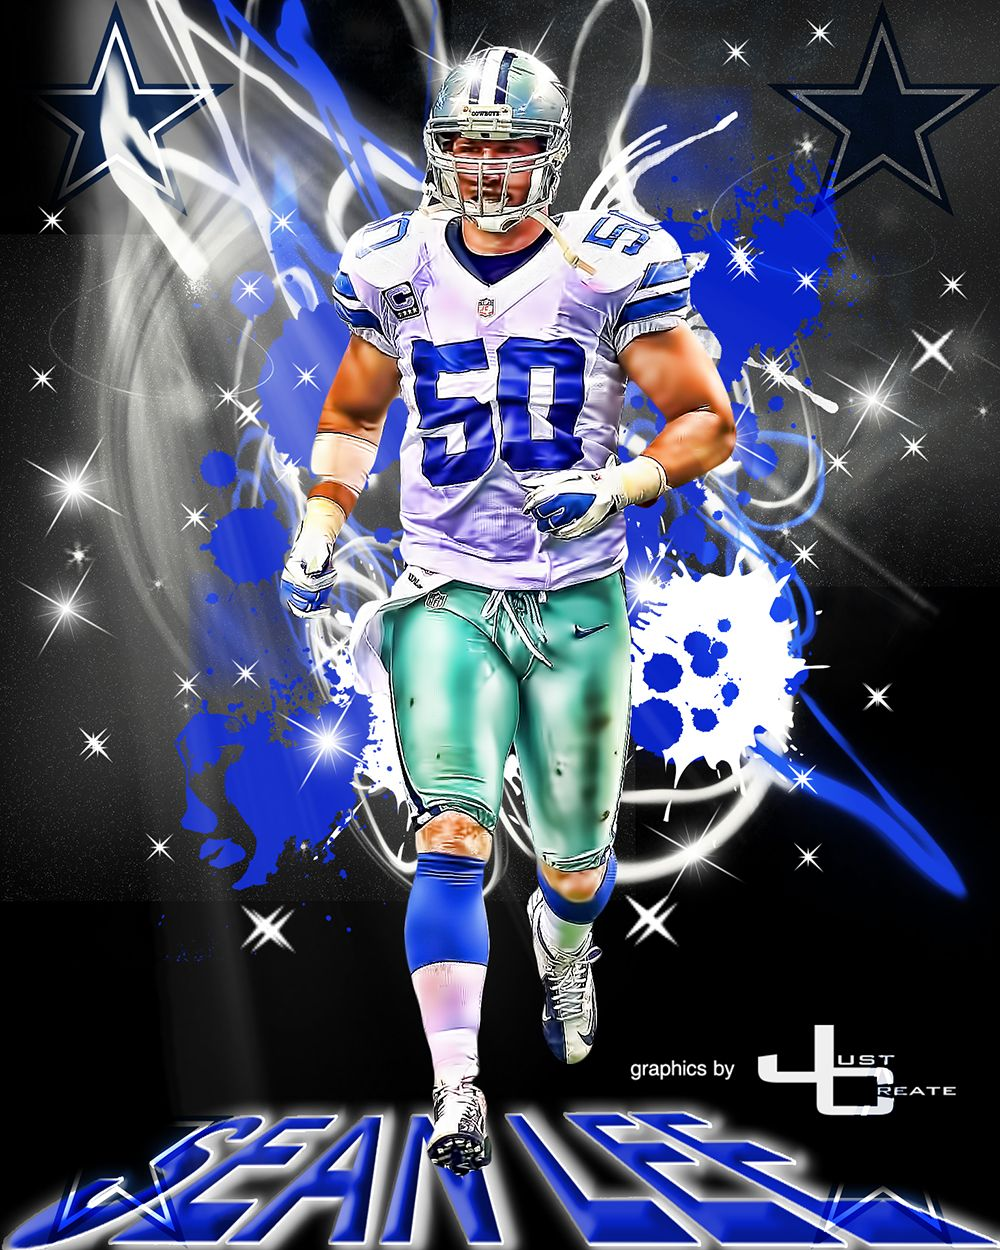 Sean Lee Graphics By Justcreate Sports Edits Dallas